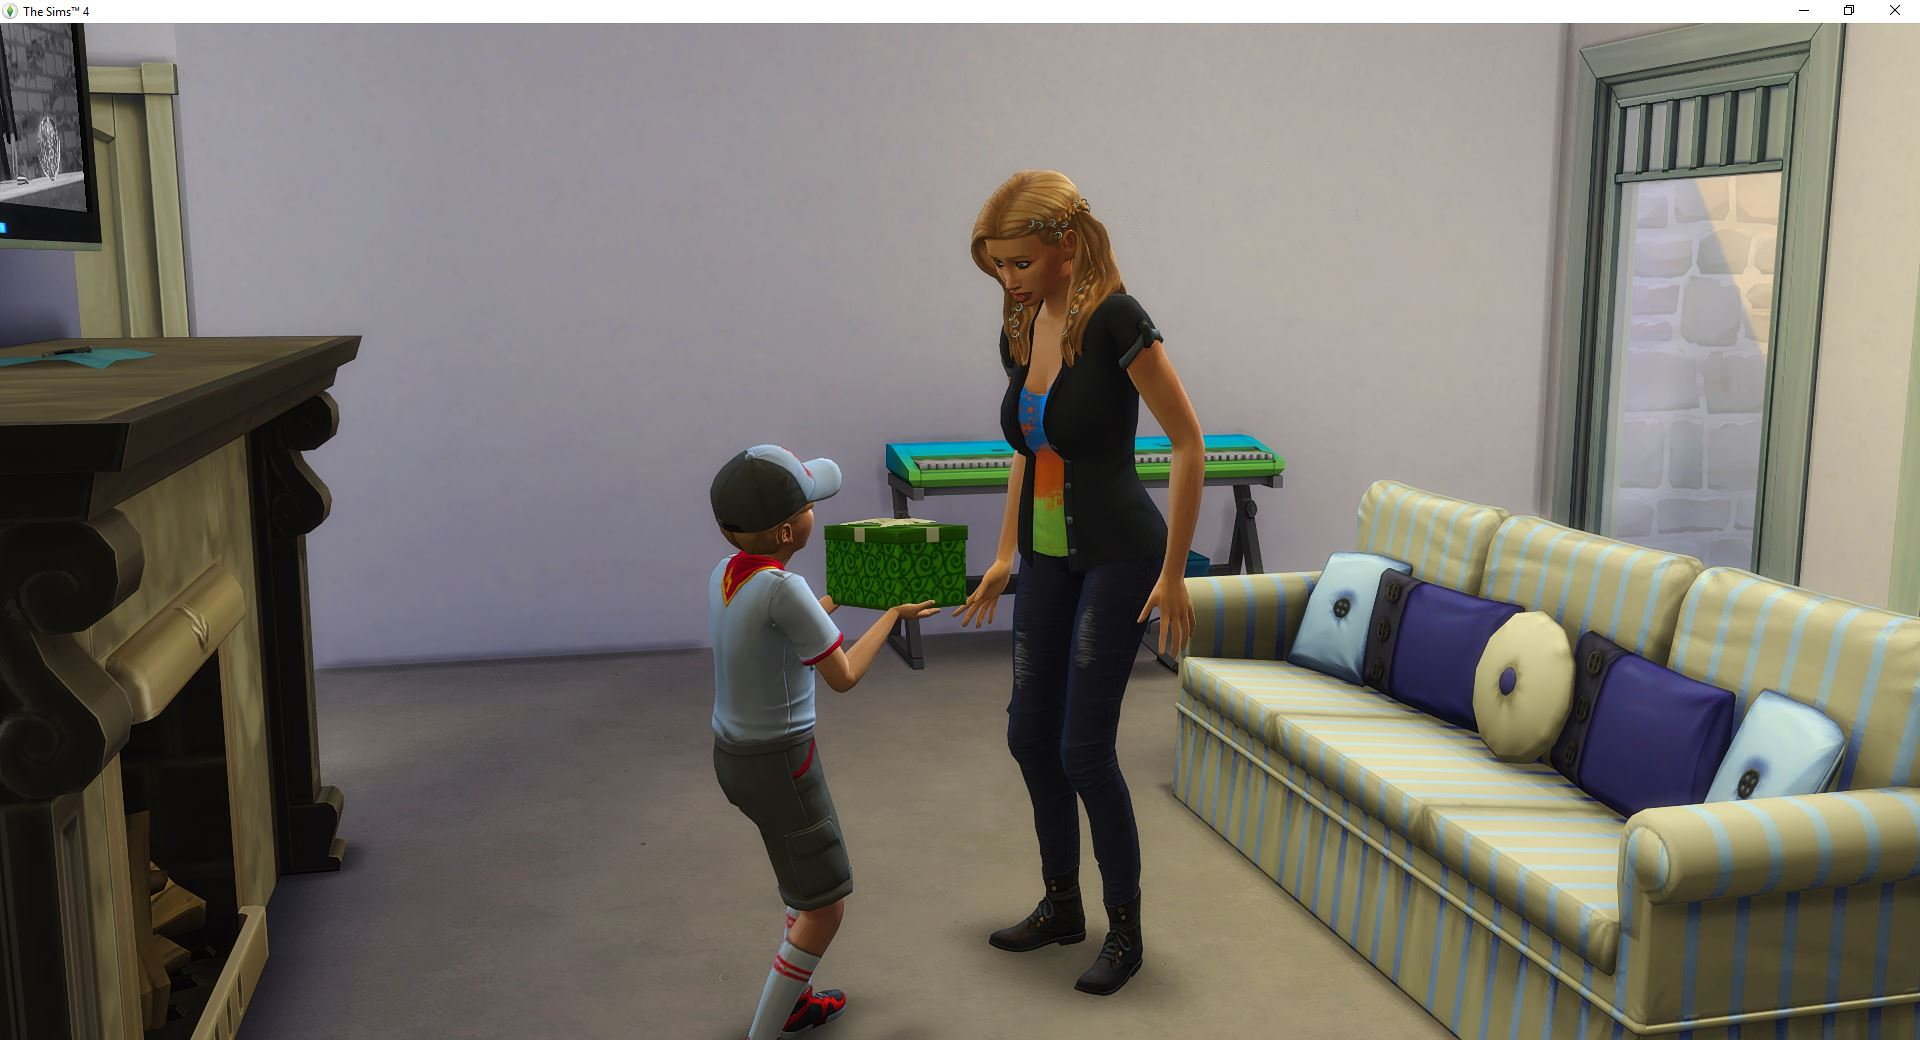 2019-02-09 07_29_05-The Sims™ 4